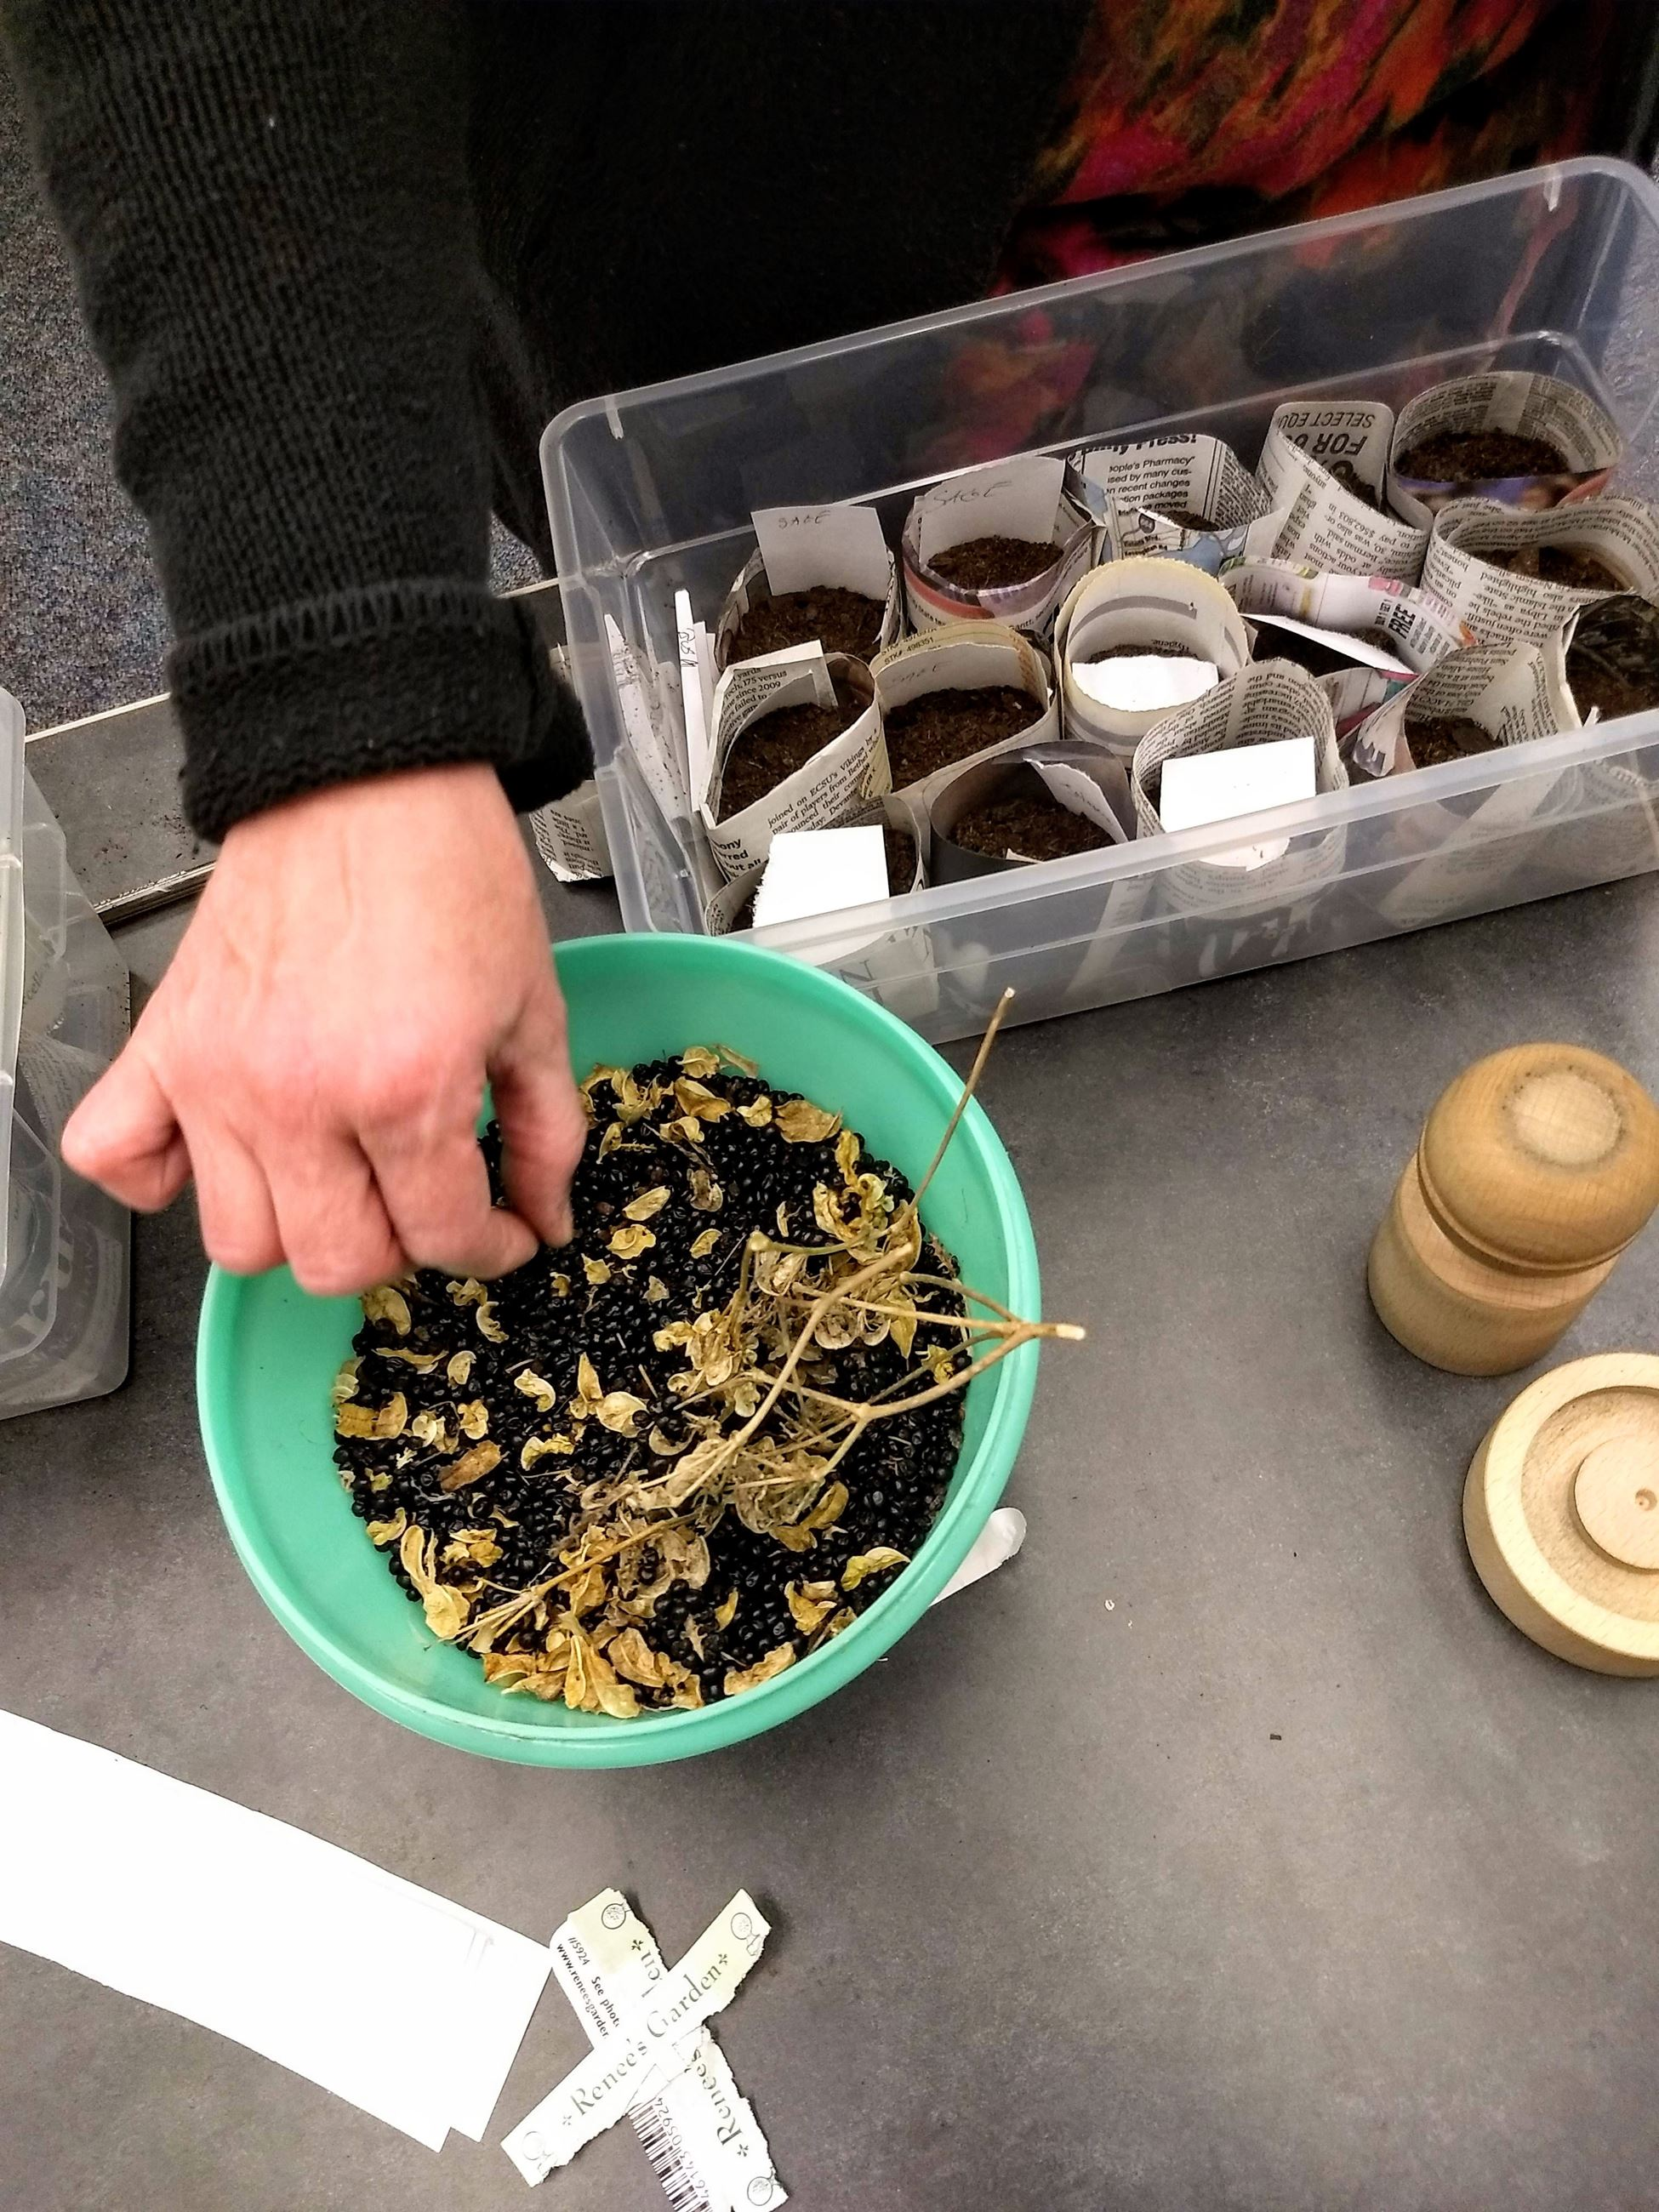 Seeds were provided for free from the Virginia Cooperative Extension and the York County Master Gard